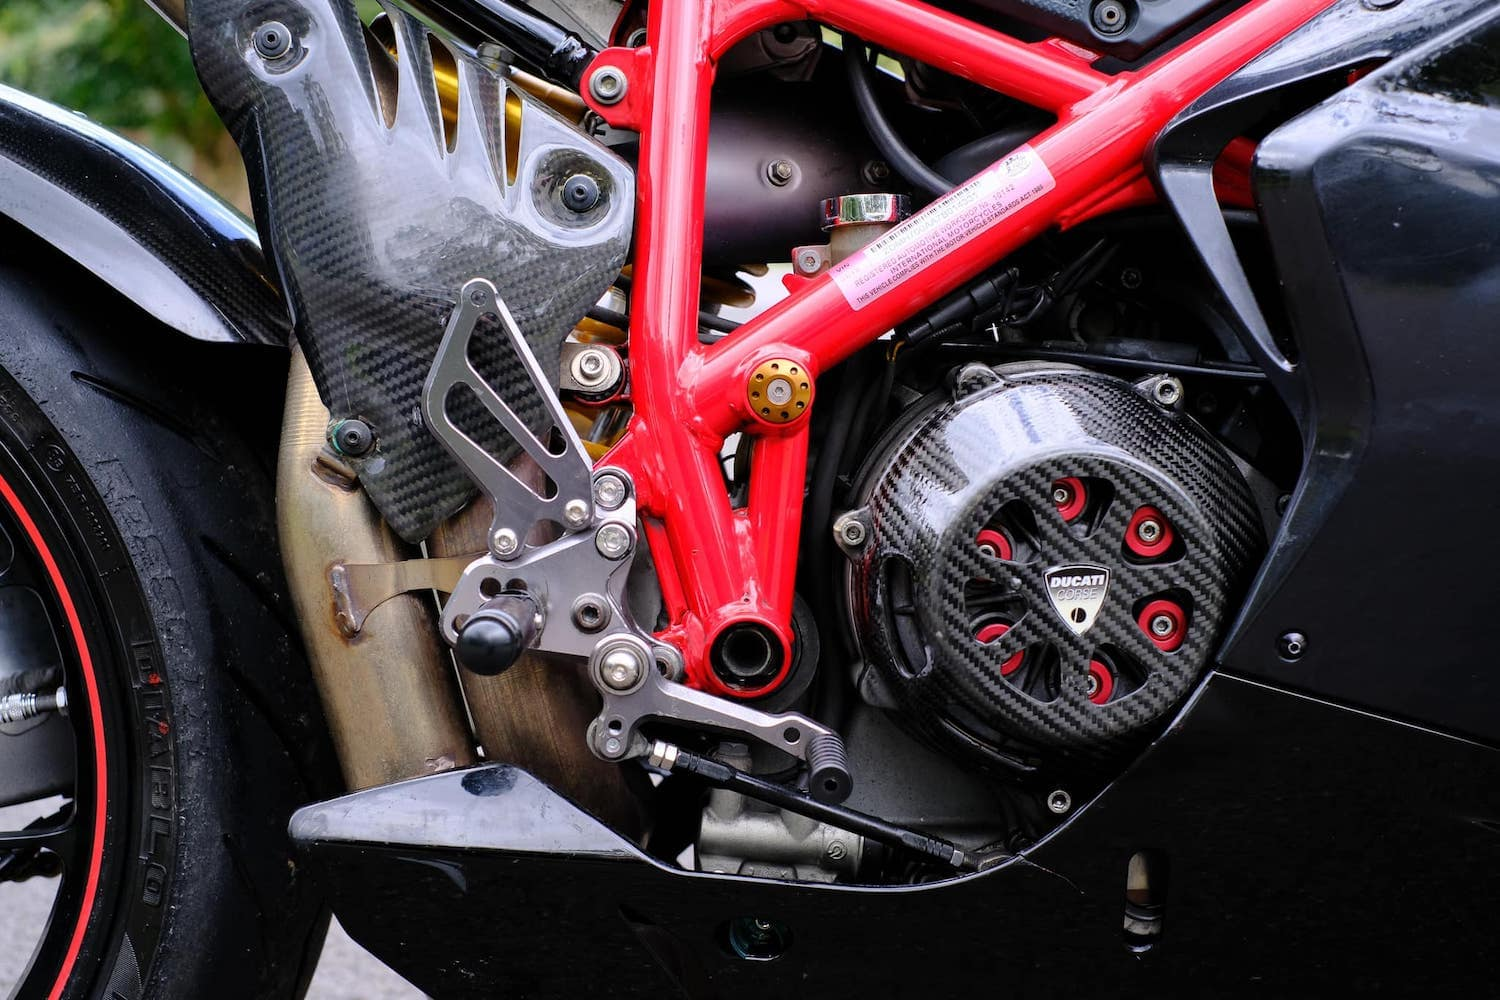 Ducati open clutch cover and after-market springs.